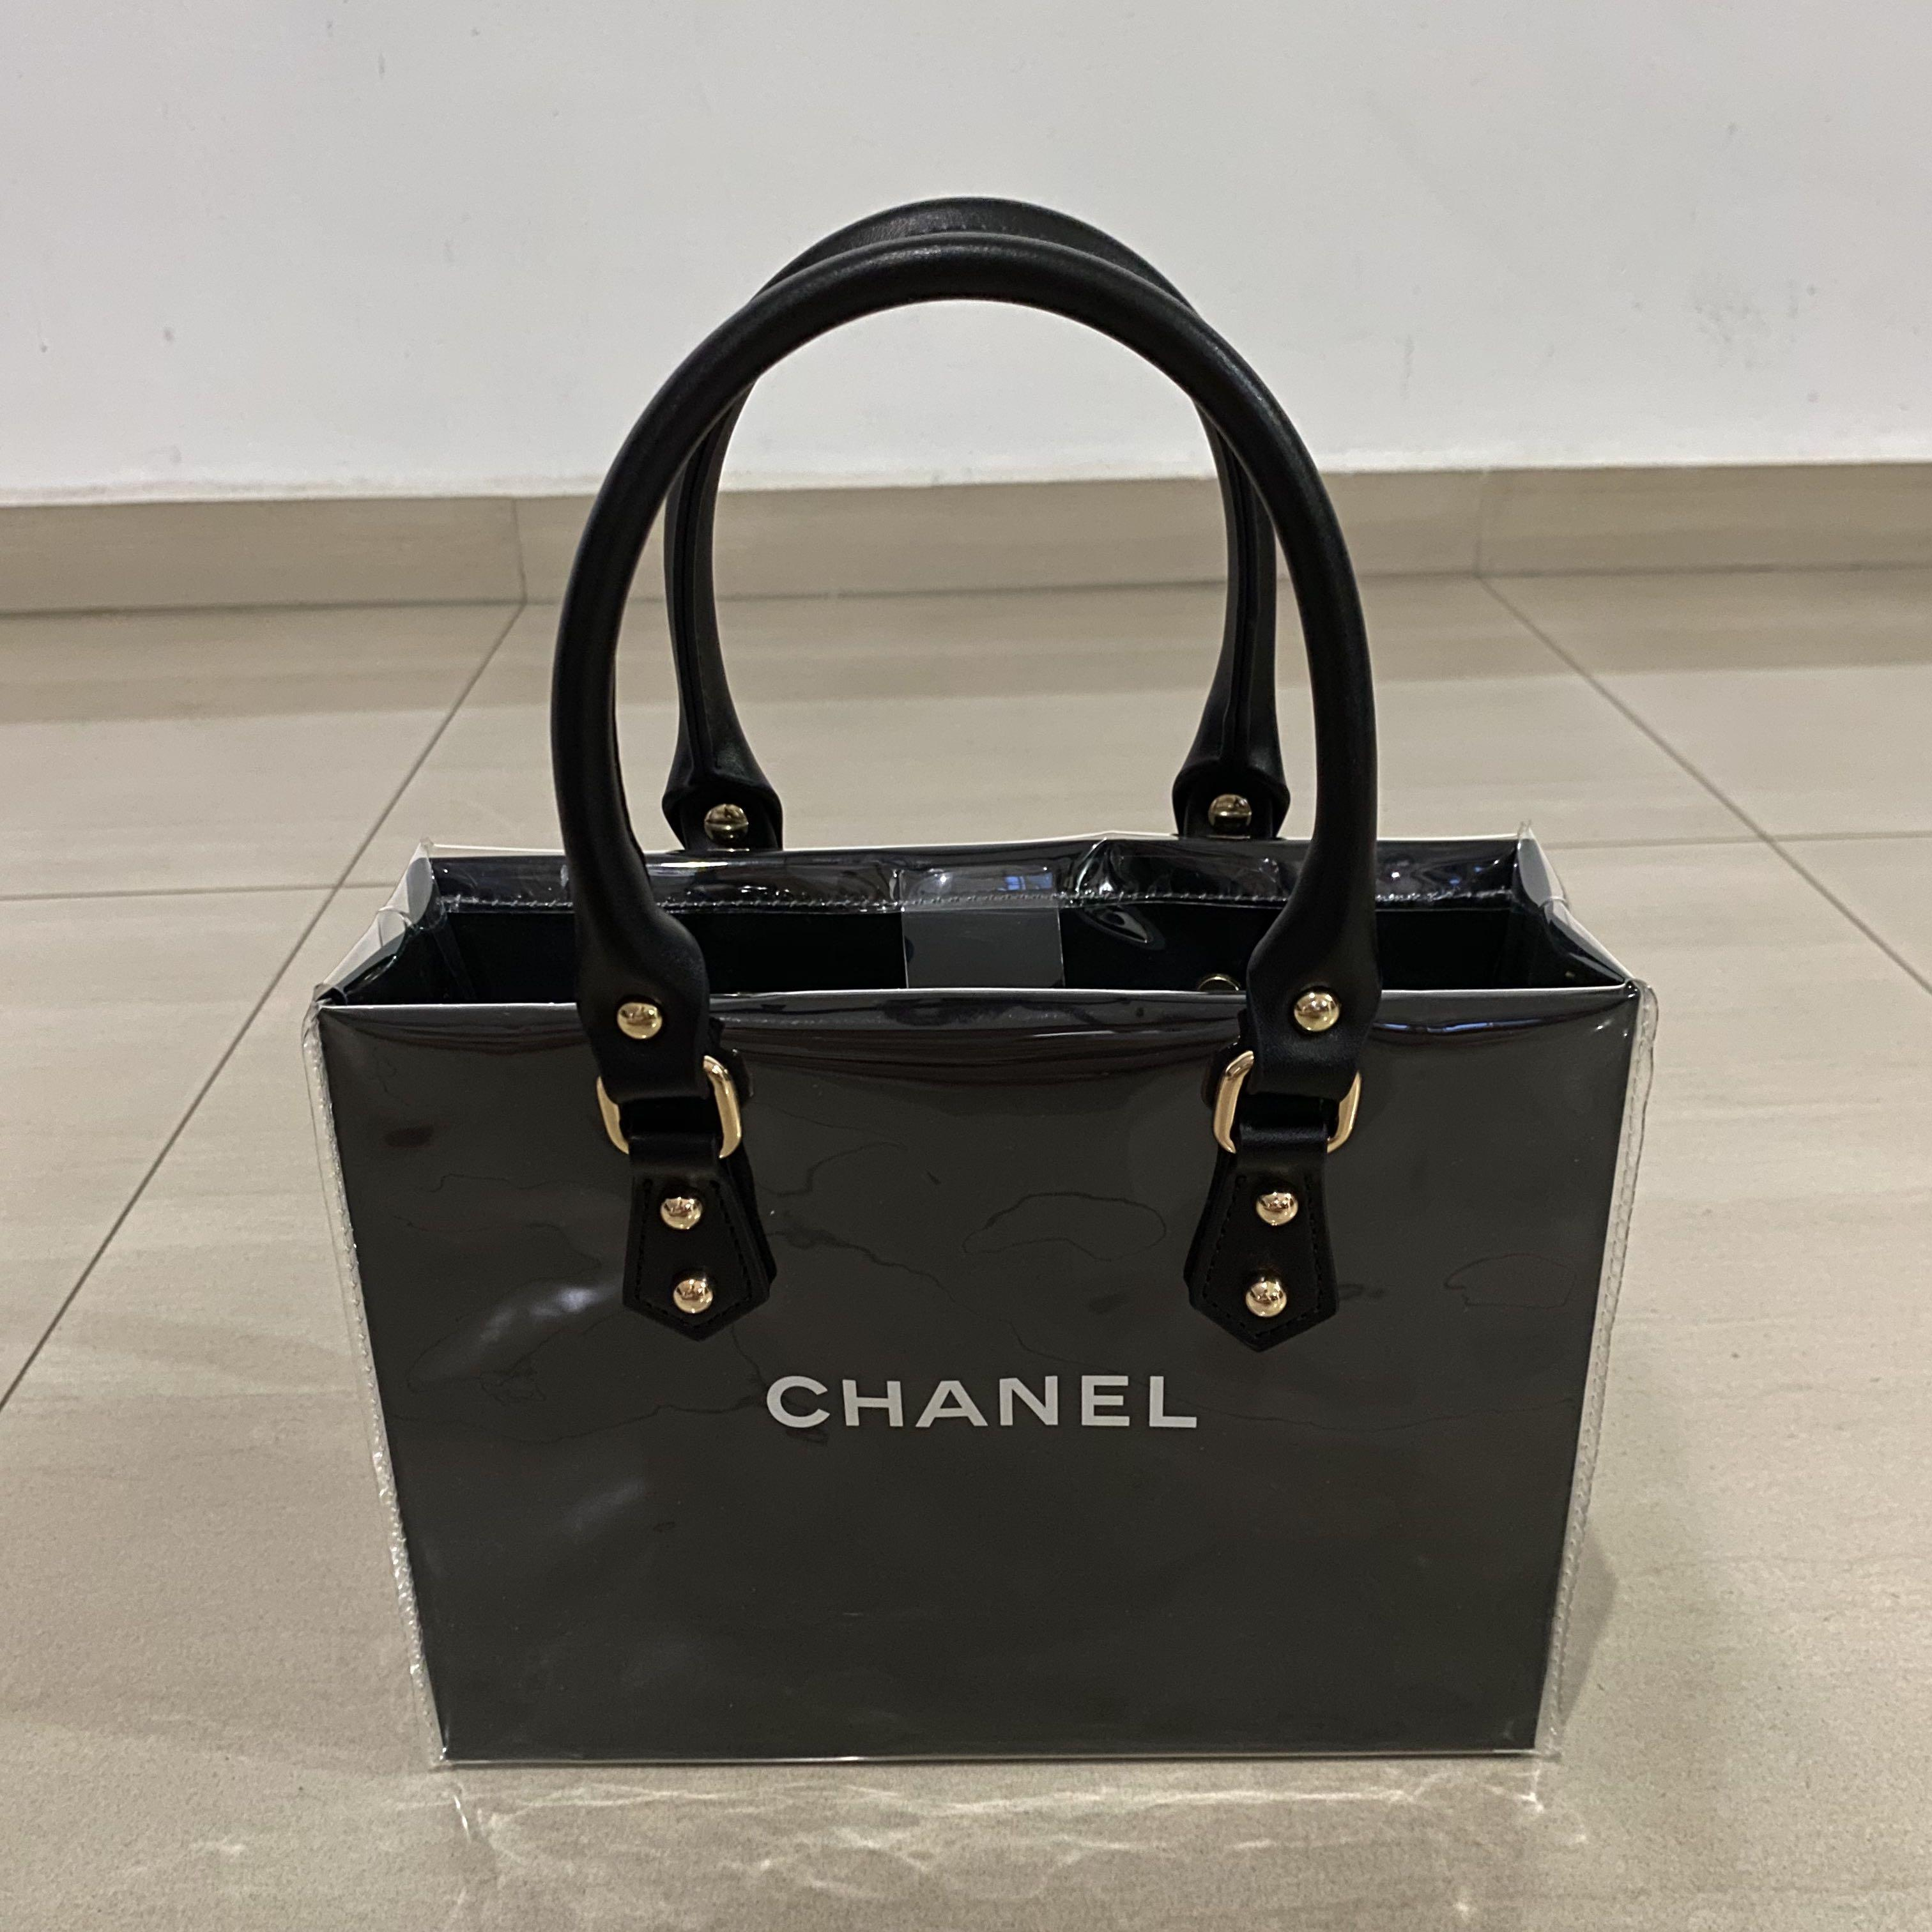 Chanel repurposed handbag pvc